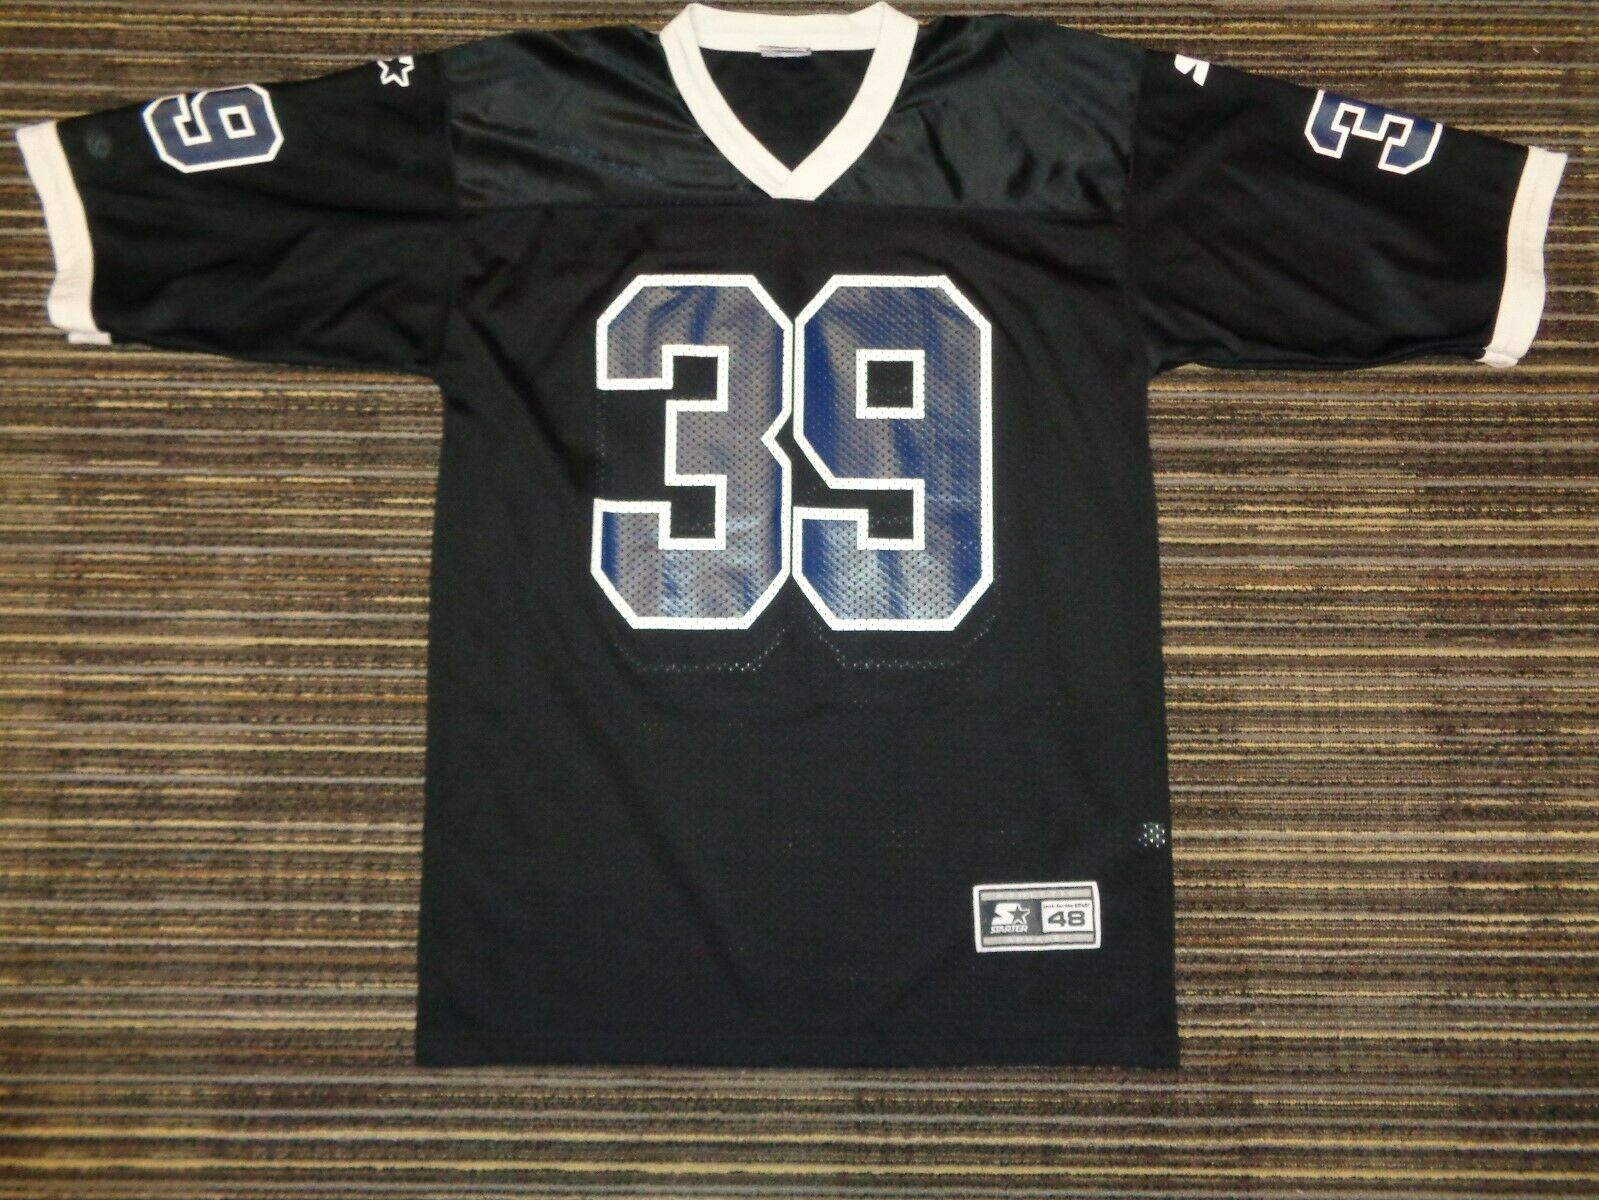 CURTIS ENIS 39 PENN STATE NITTANY LIONS STARTER BLACK NCAA COLLEGE GAME JERSEY - $39.99